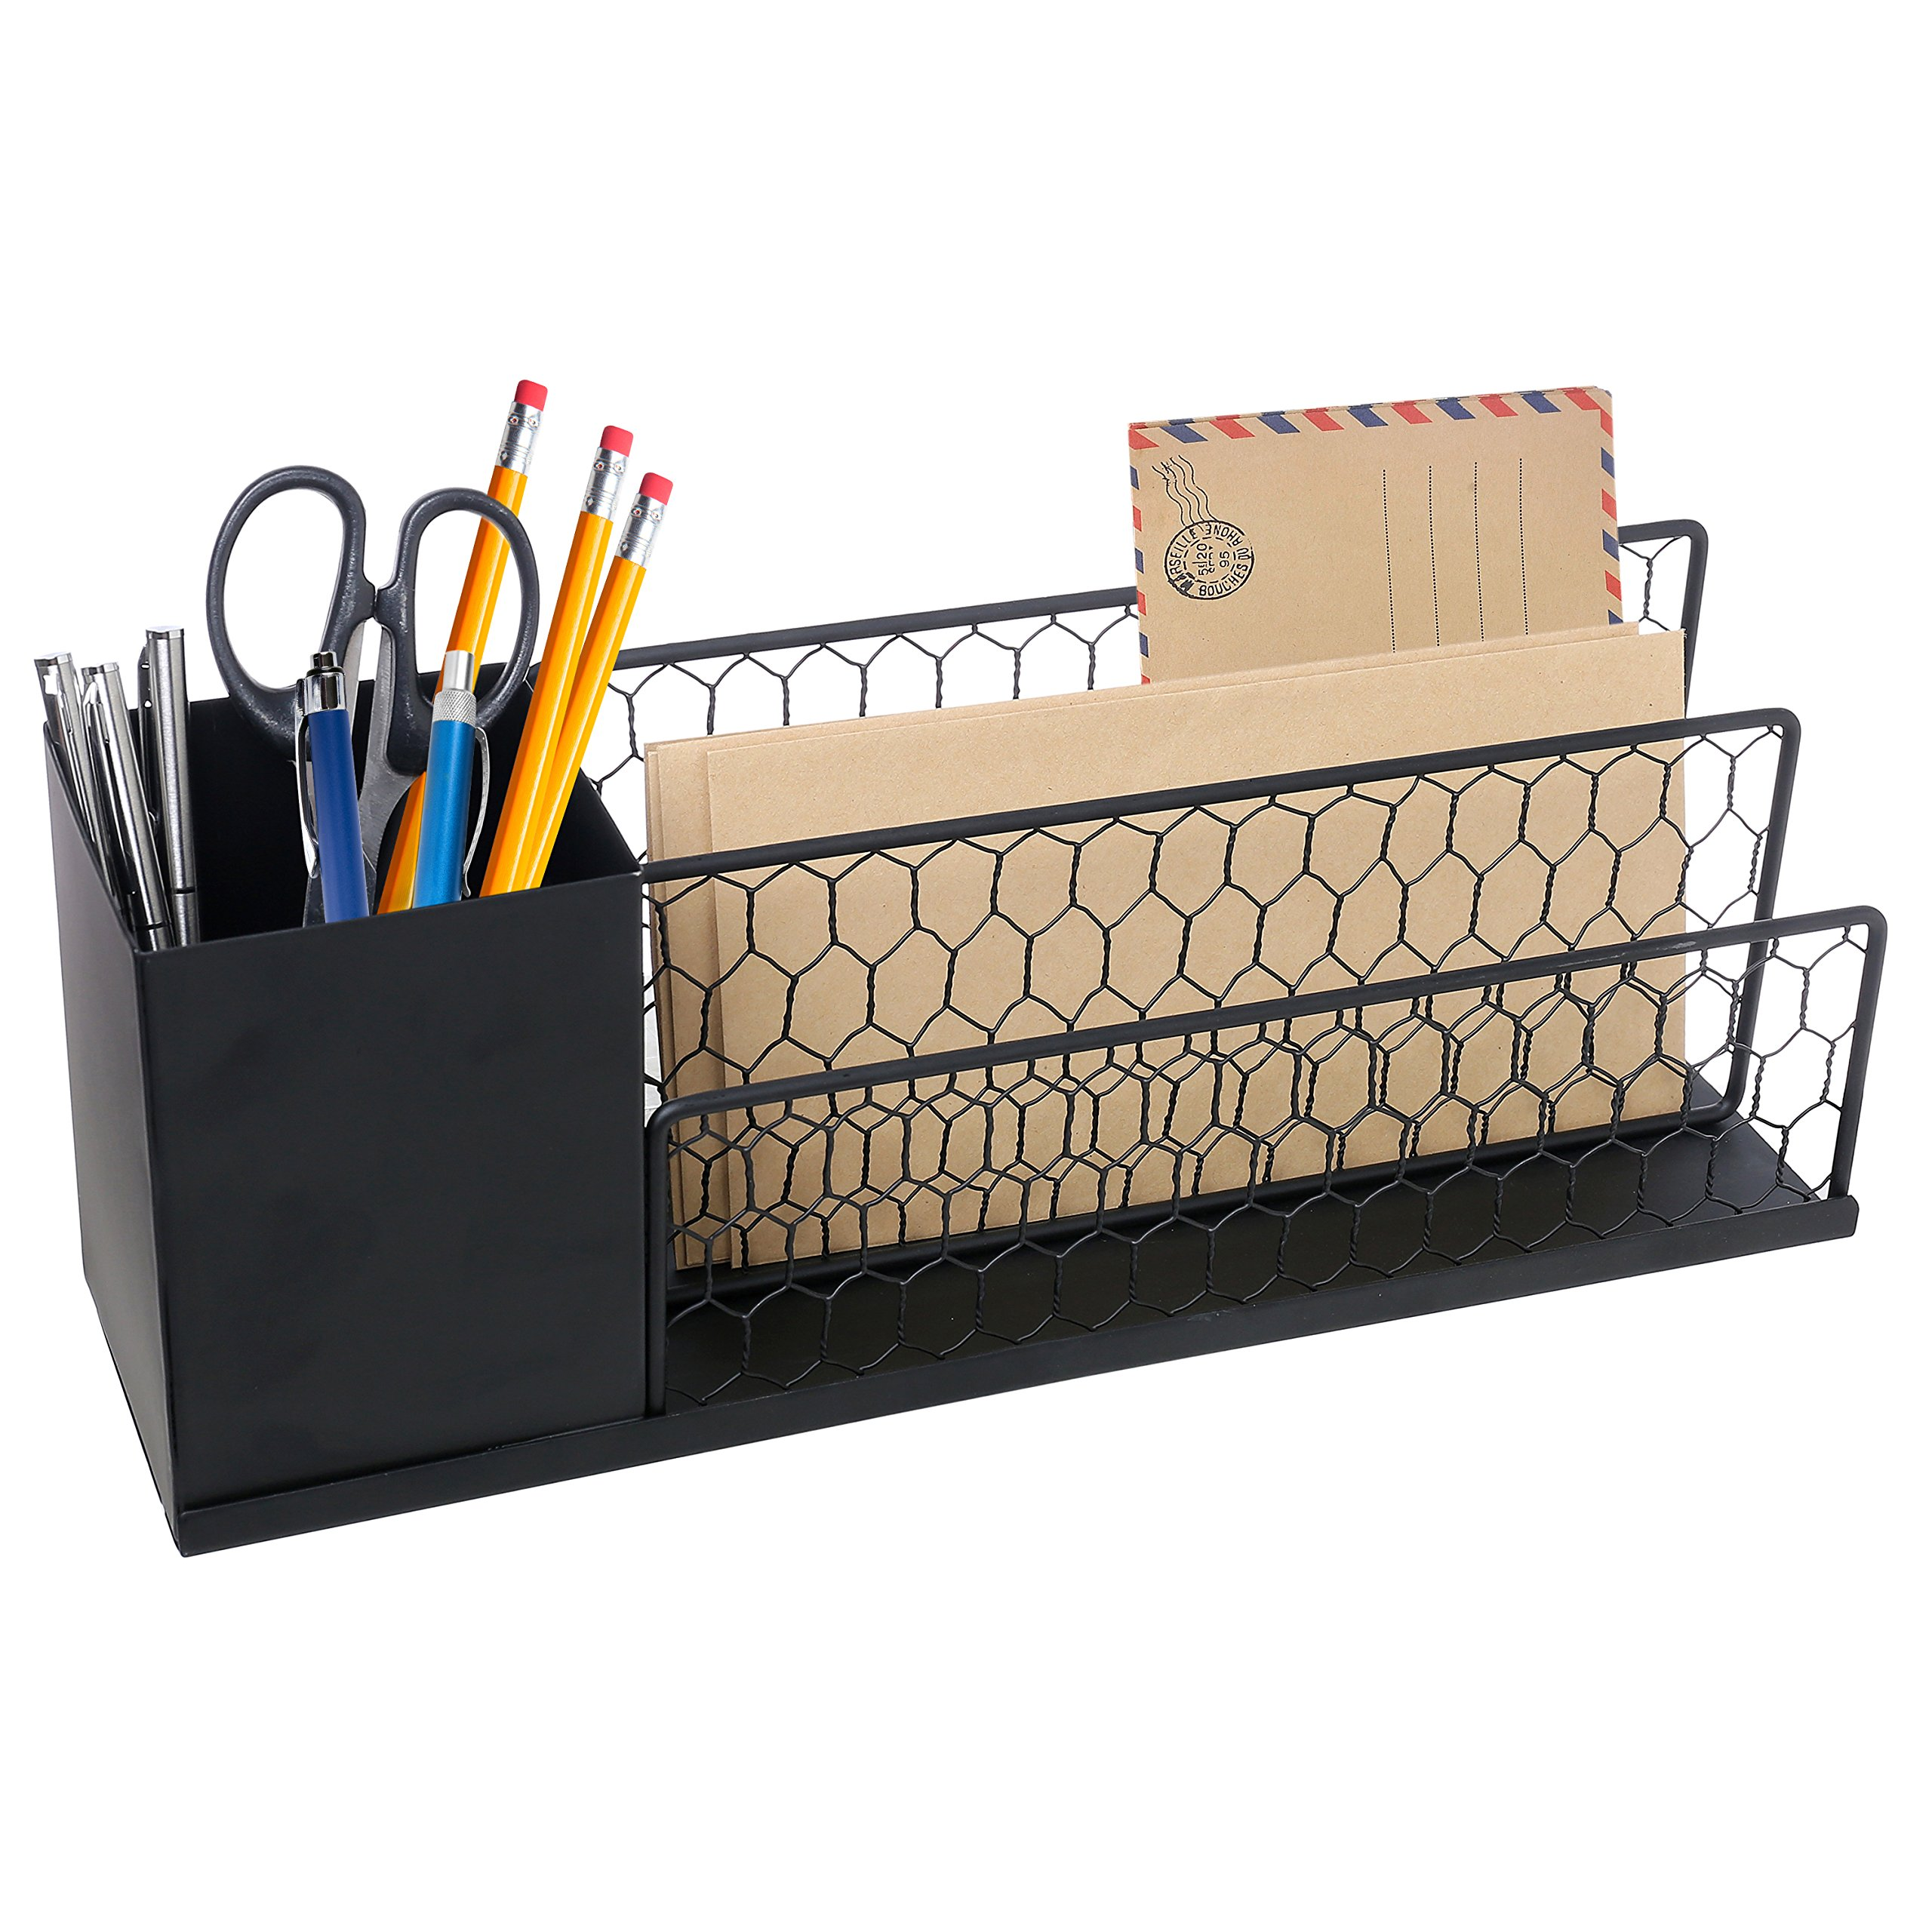 Black Metal & Chicken Wire Desktop Pen Caddy with 2 Slot Stationary Mail Sorter